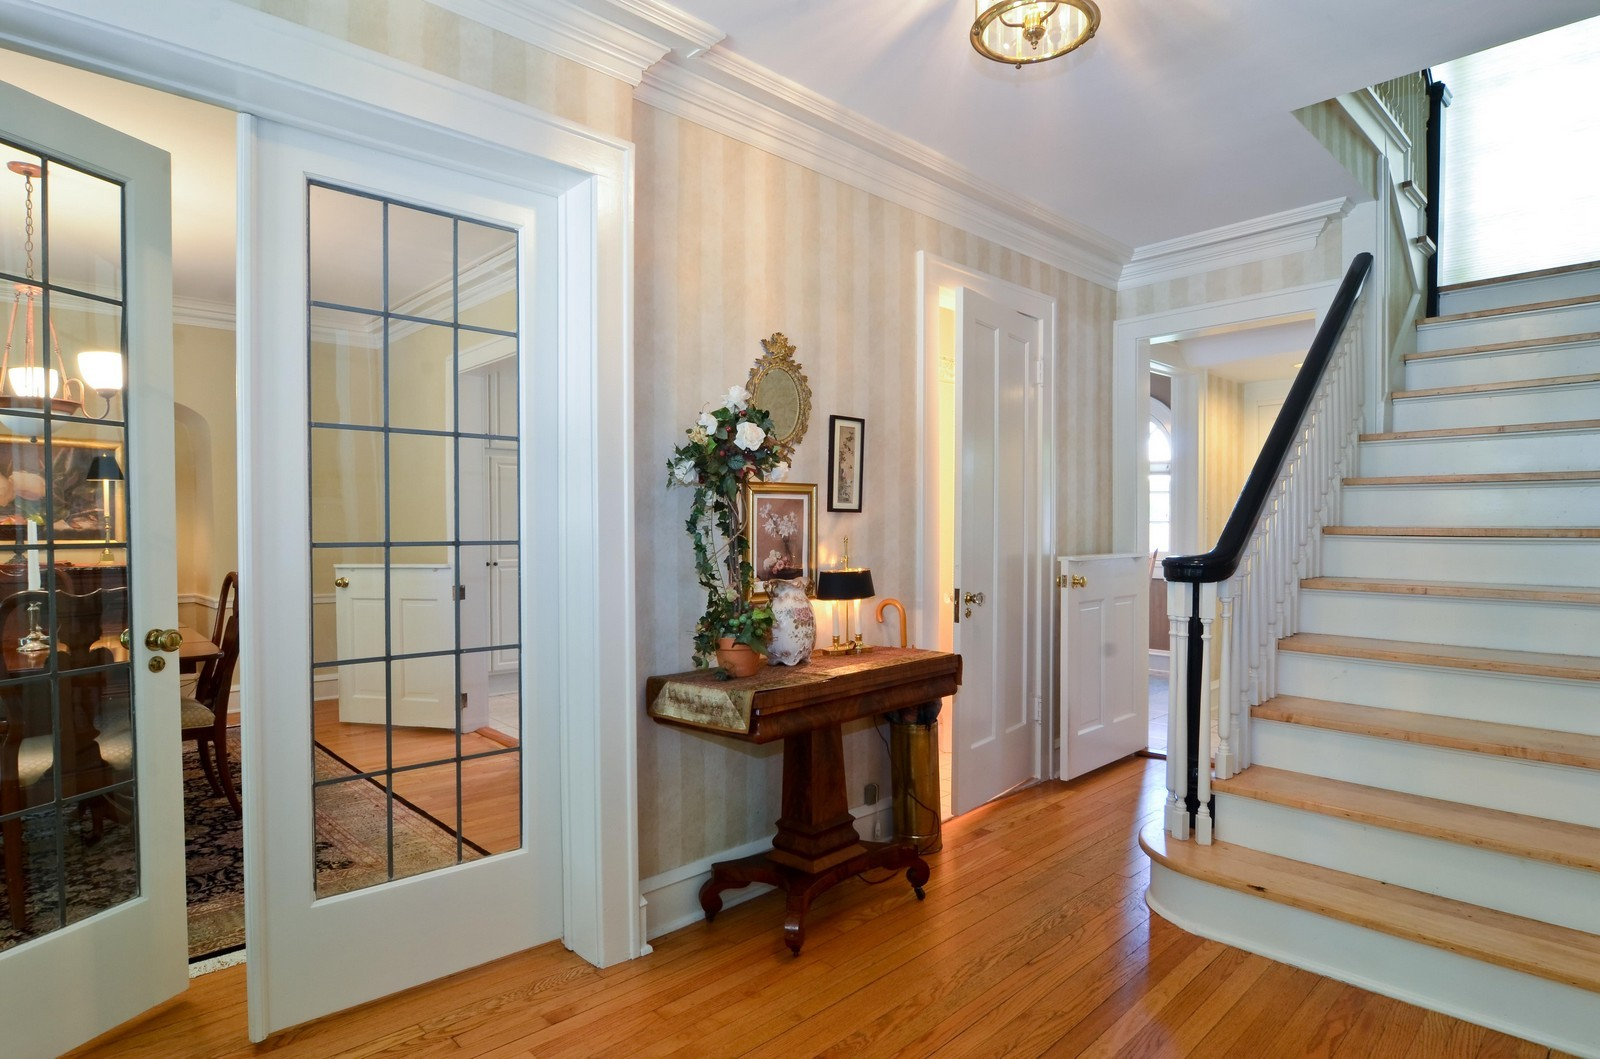 Real Estate Photography - 3444 N Hackett Ave, Milwaukee, WI, 53211 - Foyer